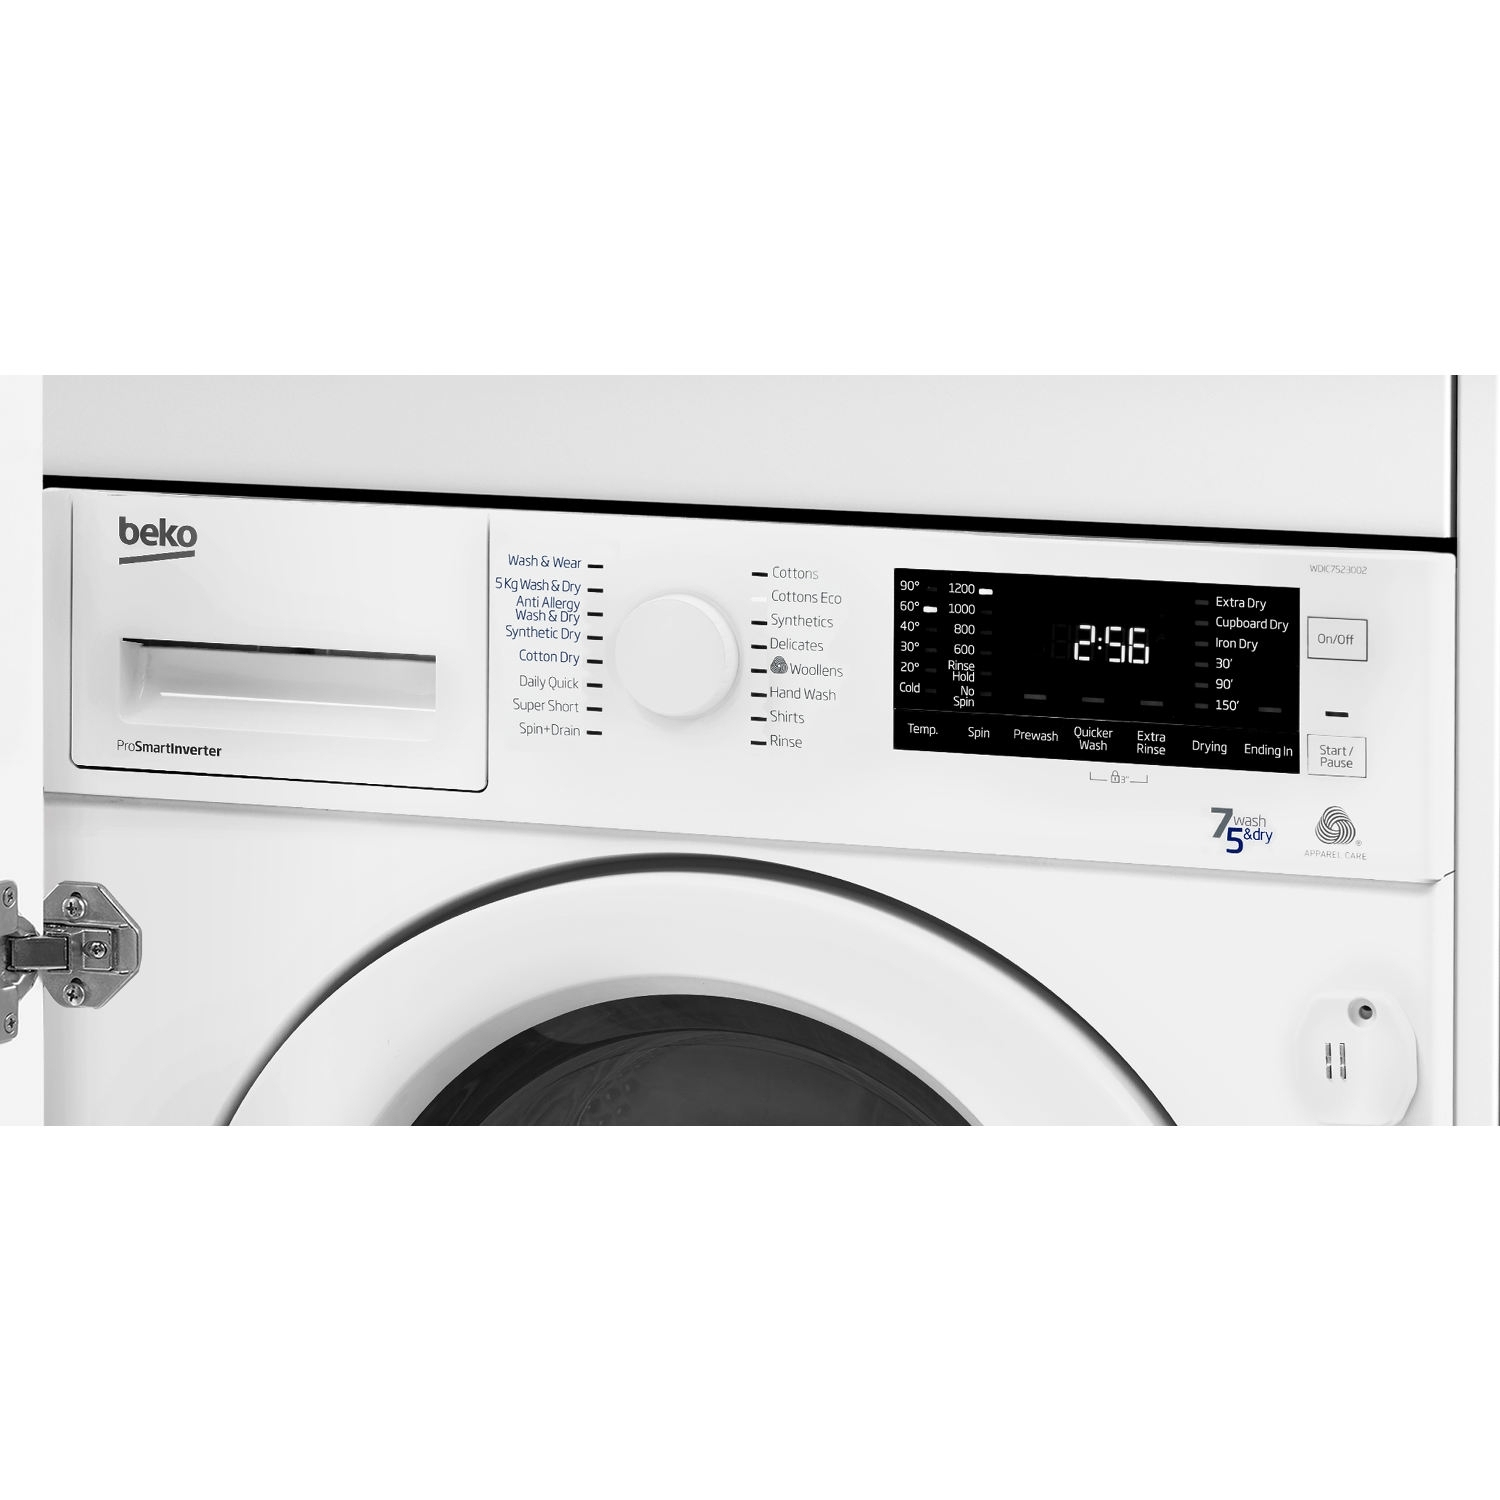 Beko Integrated 7kg/5kg 1200 Spin Washer Dryer - White - B Rated - 5